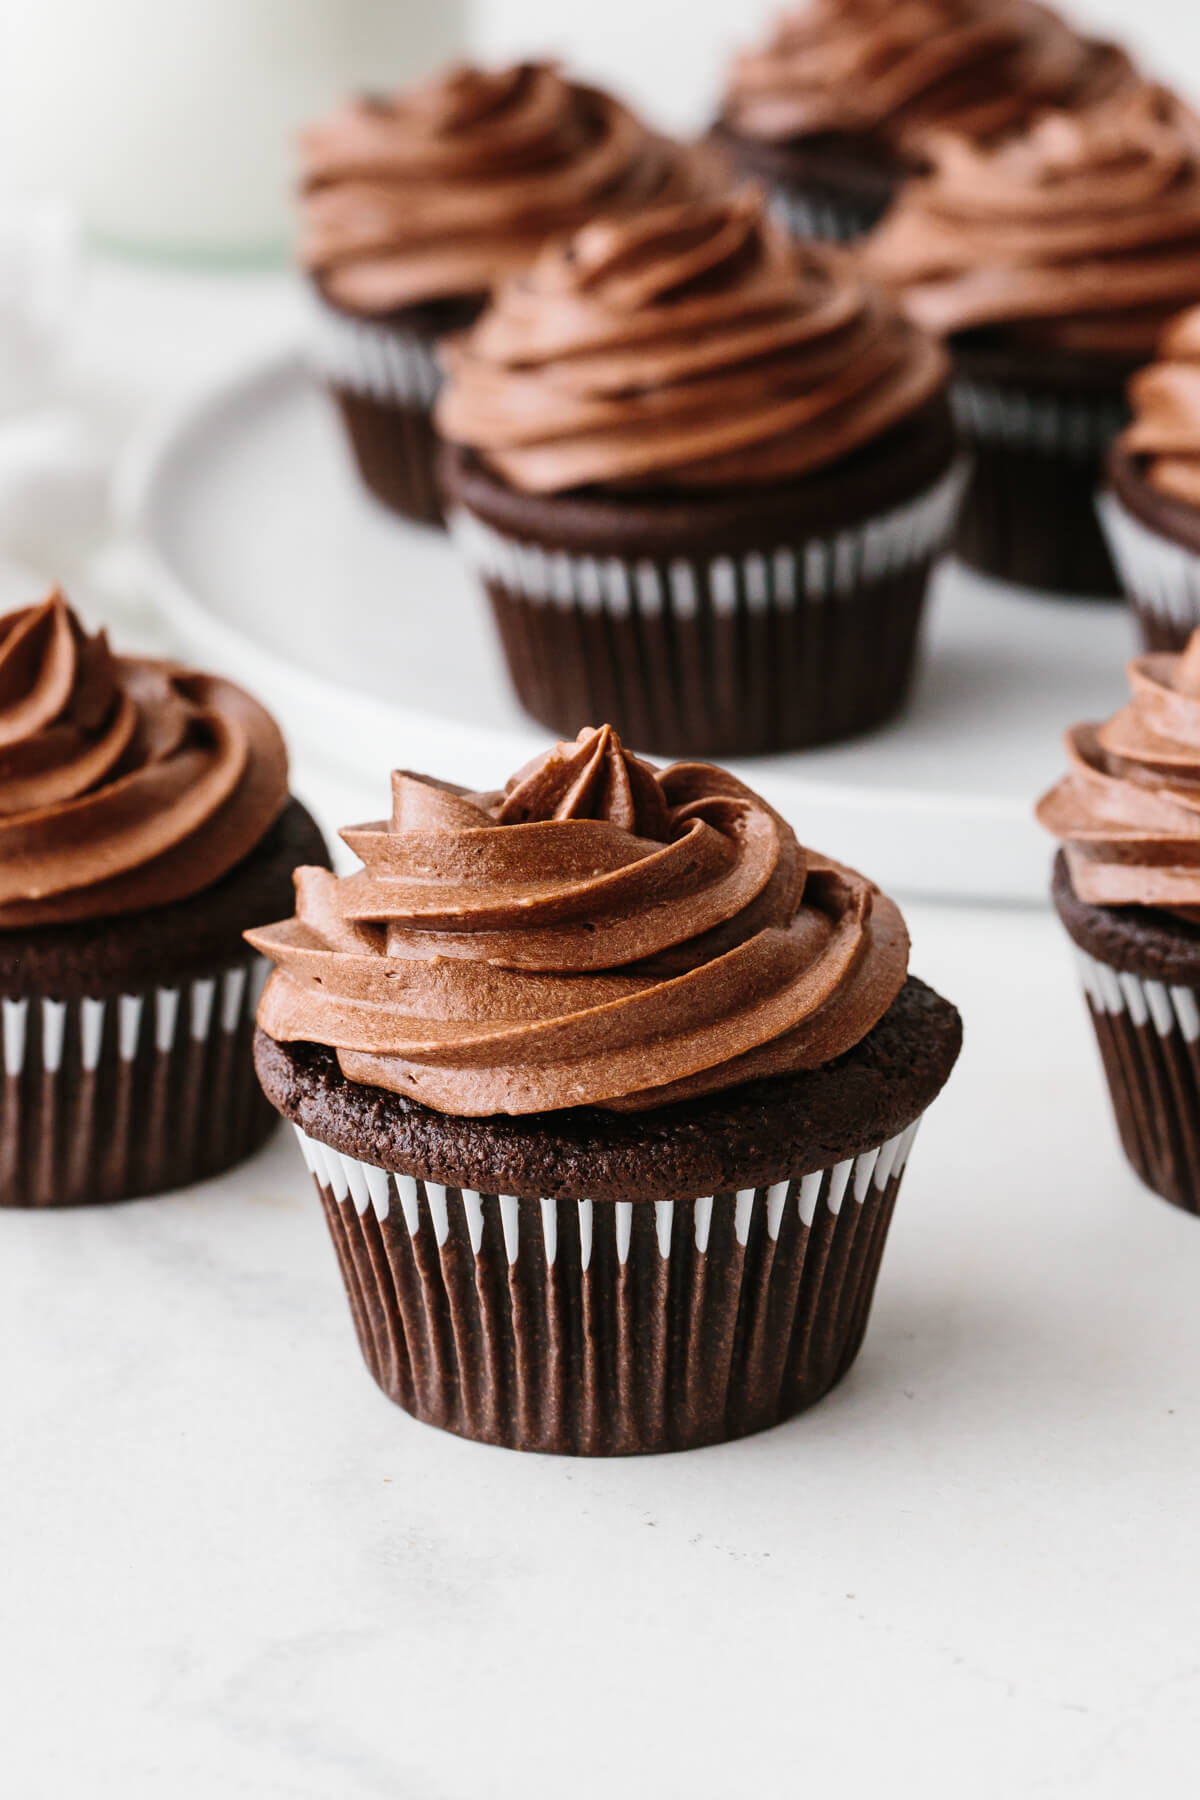 Paleo chocolate cupcakes on a table.